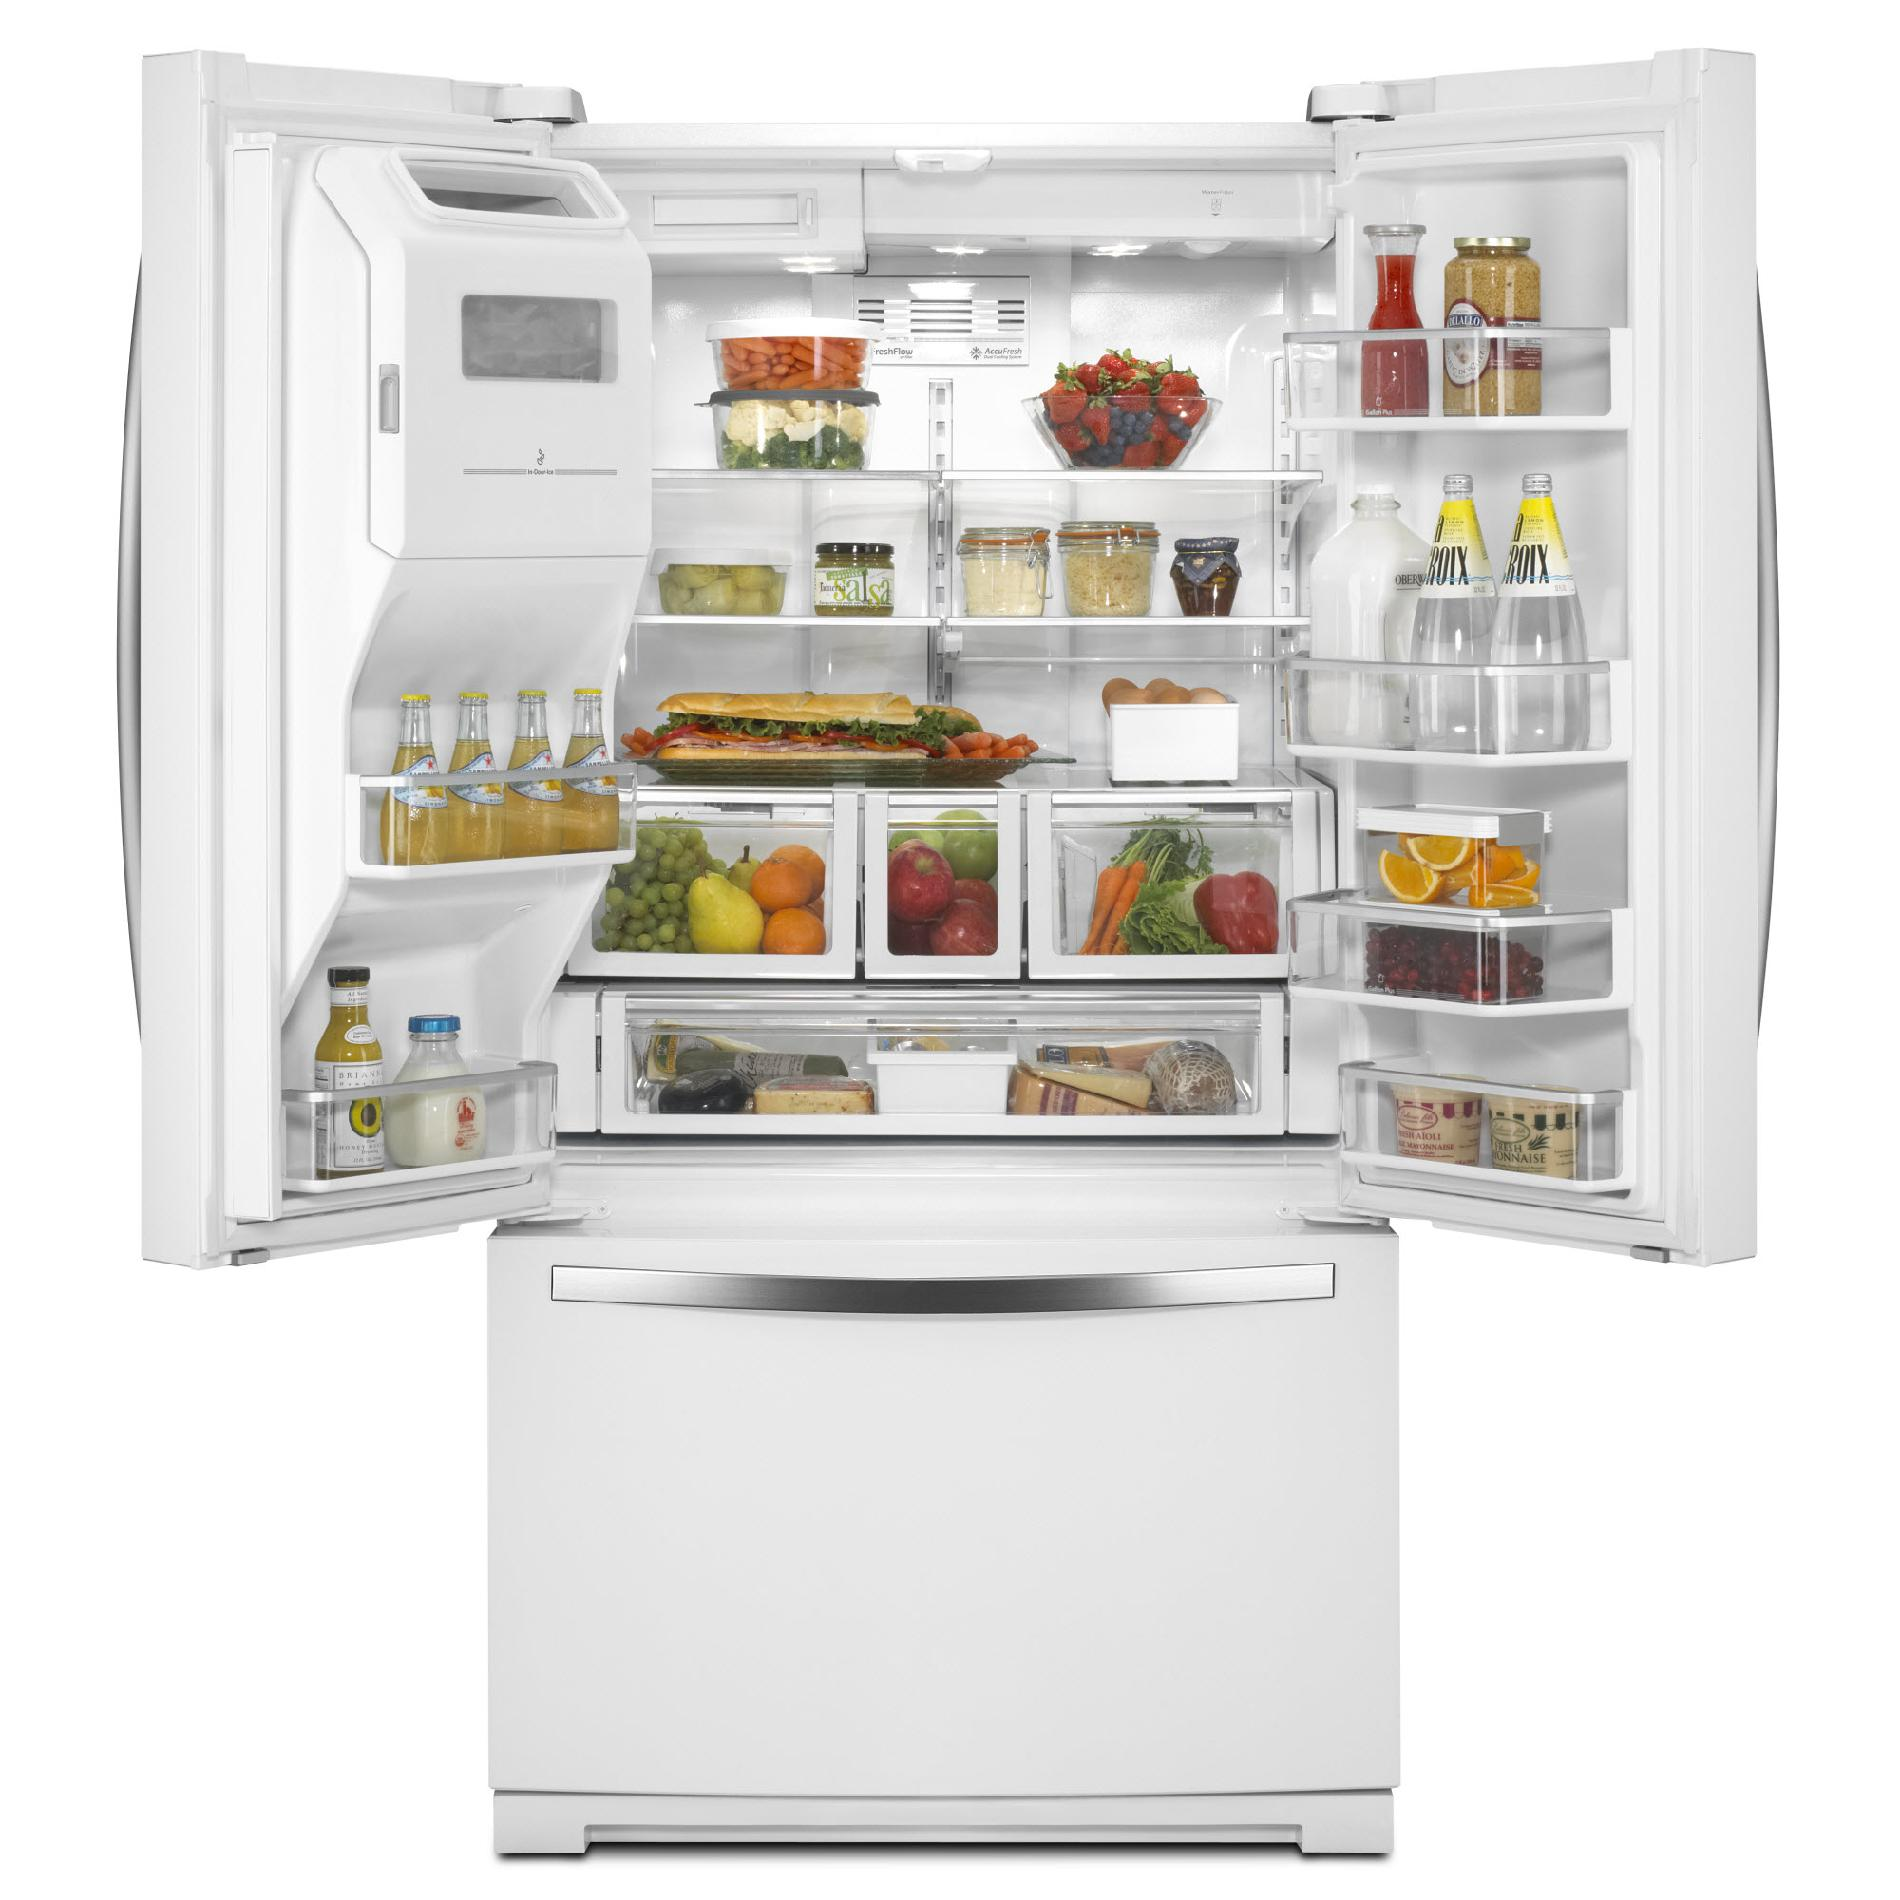 Whirlpool 27 cu. ft. French Door Refrigerator  - White